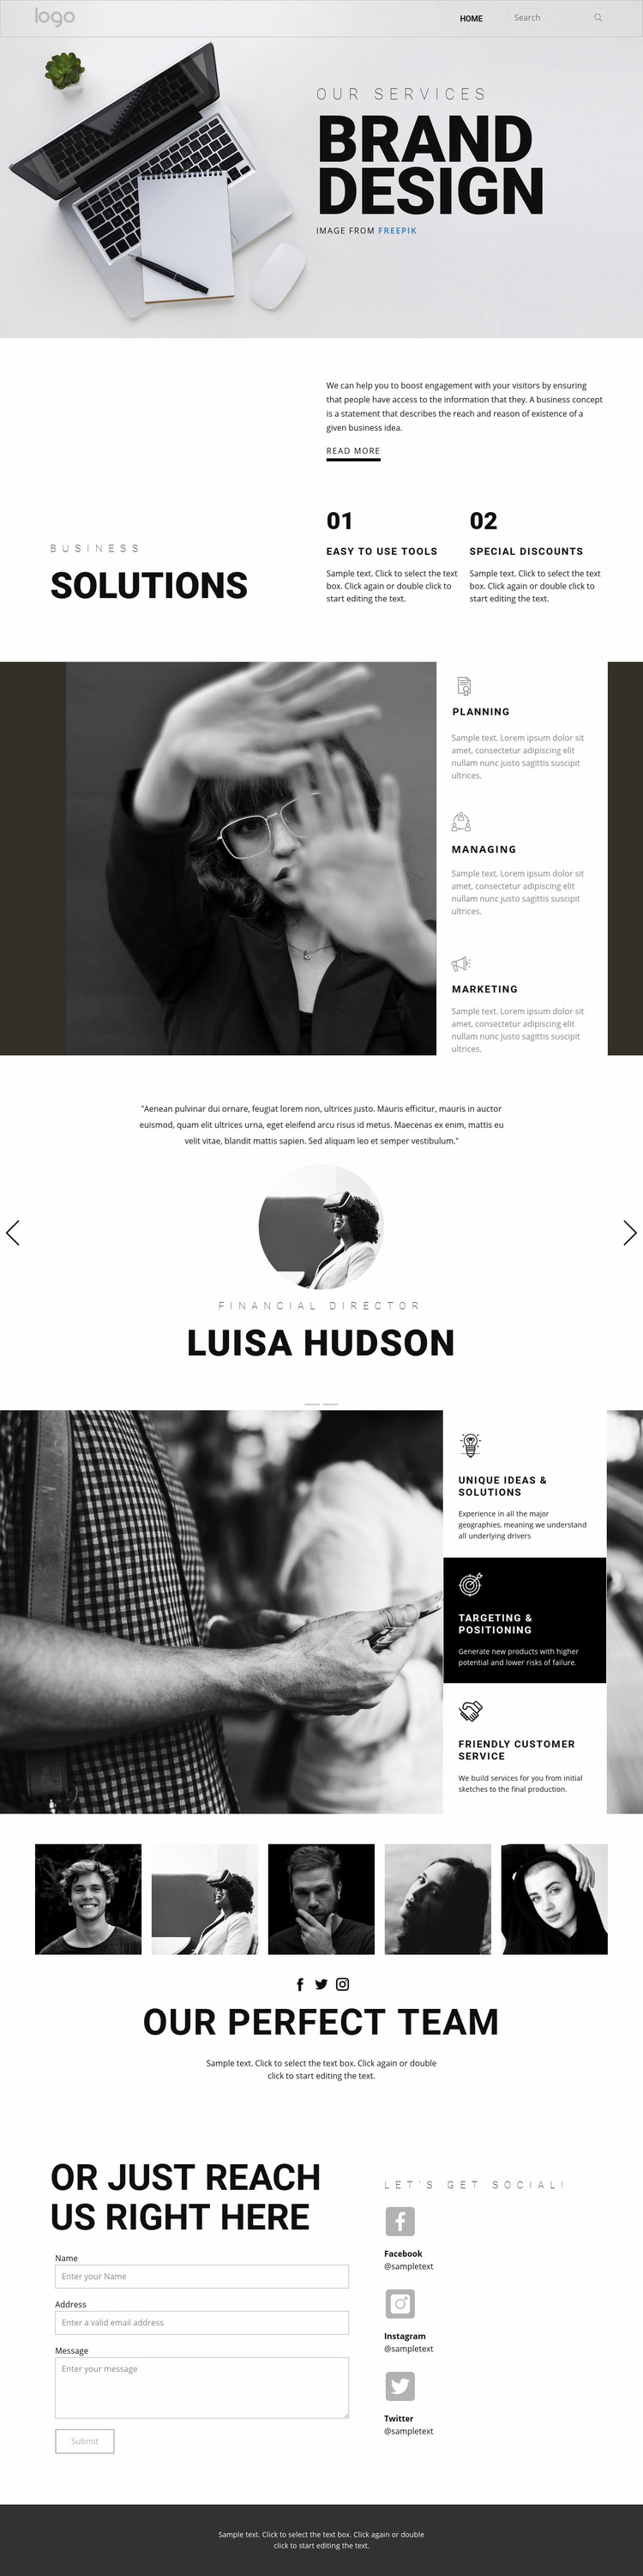 Doing branding for business Web Page Design